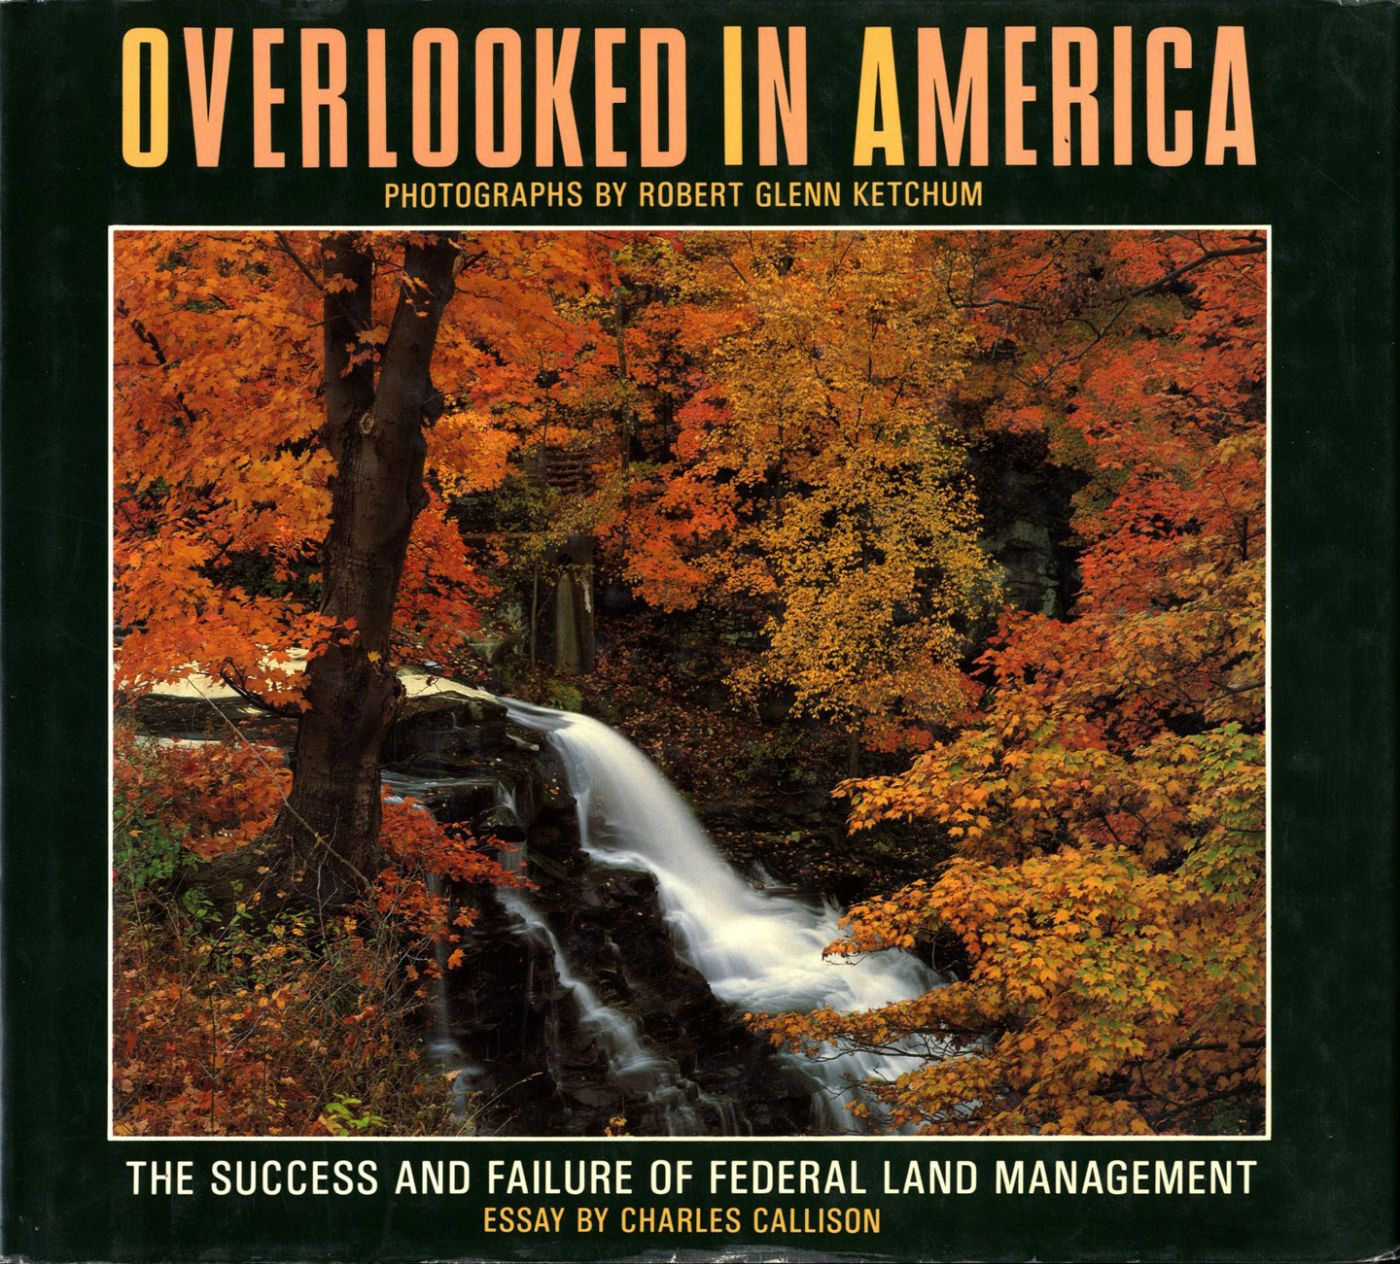 Overlooked in America: The Success and Failure of Federal Land Management - The photographs of Robert Glenn Ketchum [SIGNED ASSOCIATION COPY]